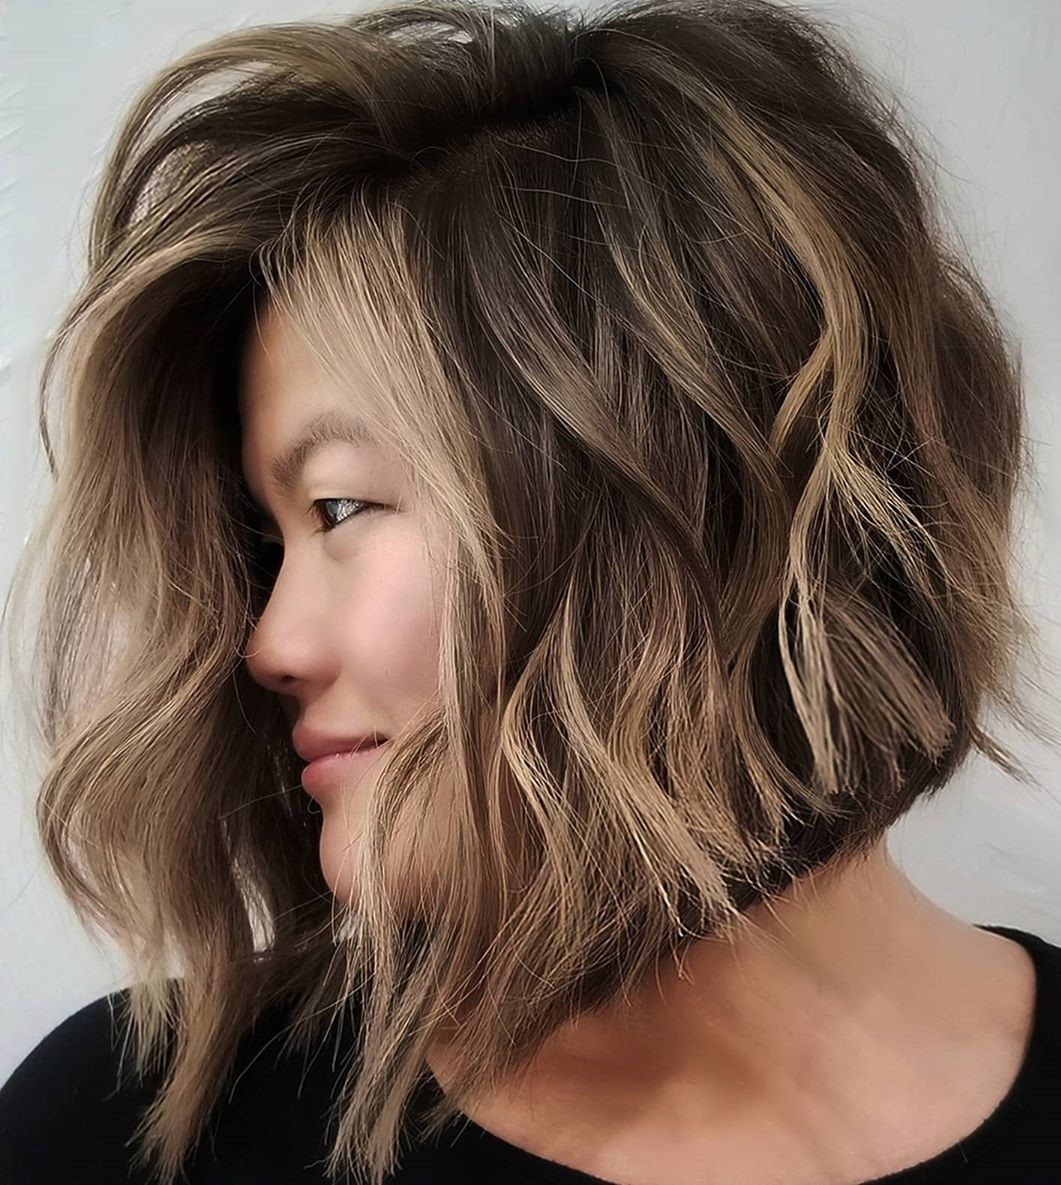 Neck-Length Haircut for Thick Wavy Hair